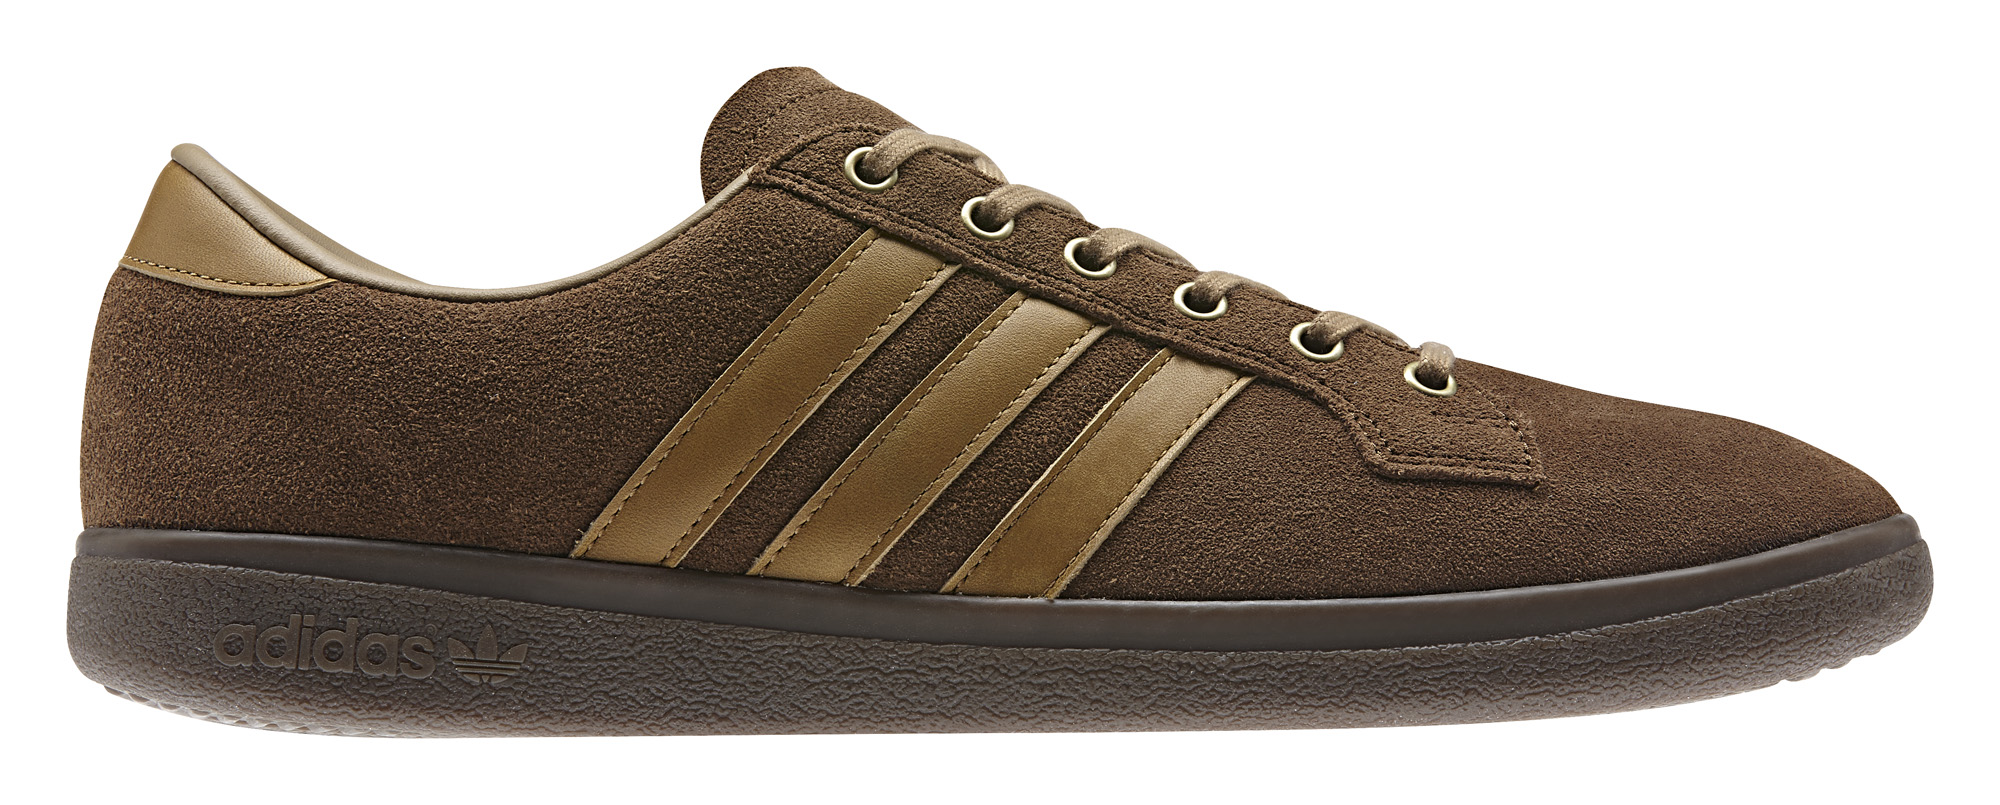 adidas-spezial-collection-fall-winter-2016-12